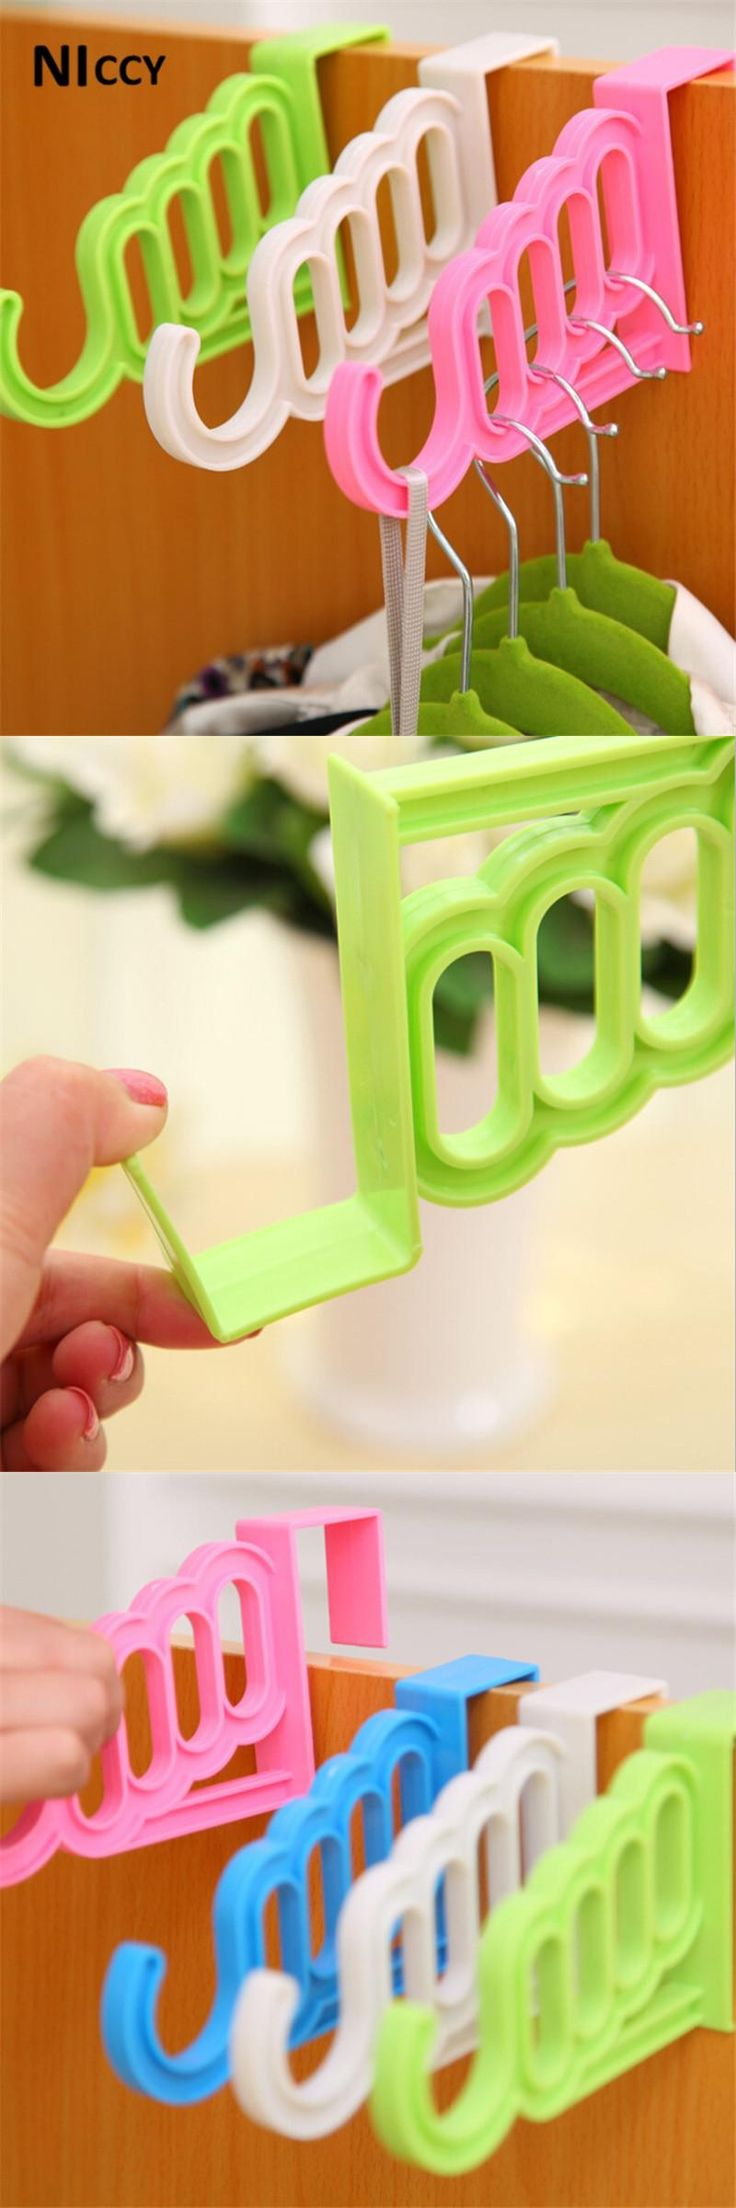 Candy Colored Coat Clothes Hanger Drying Rack Bathroom Door Hook for Umbrella Clothing Plastic Organizer Space Saver